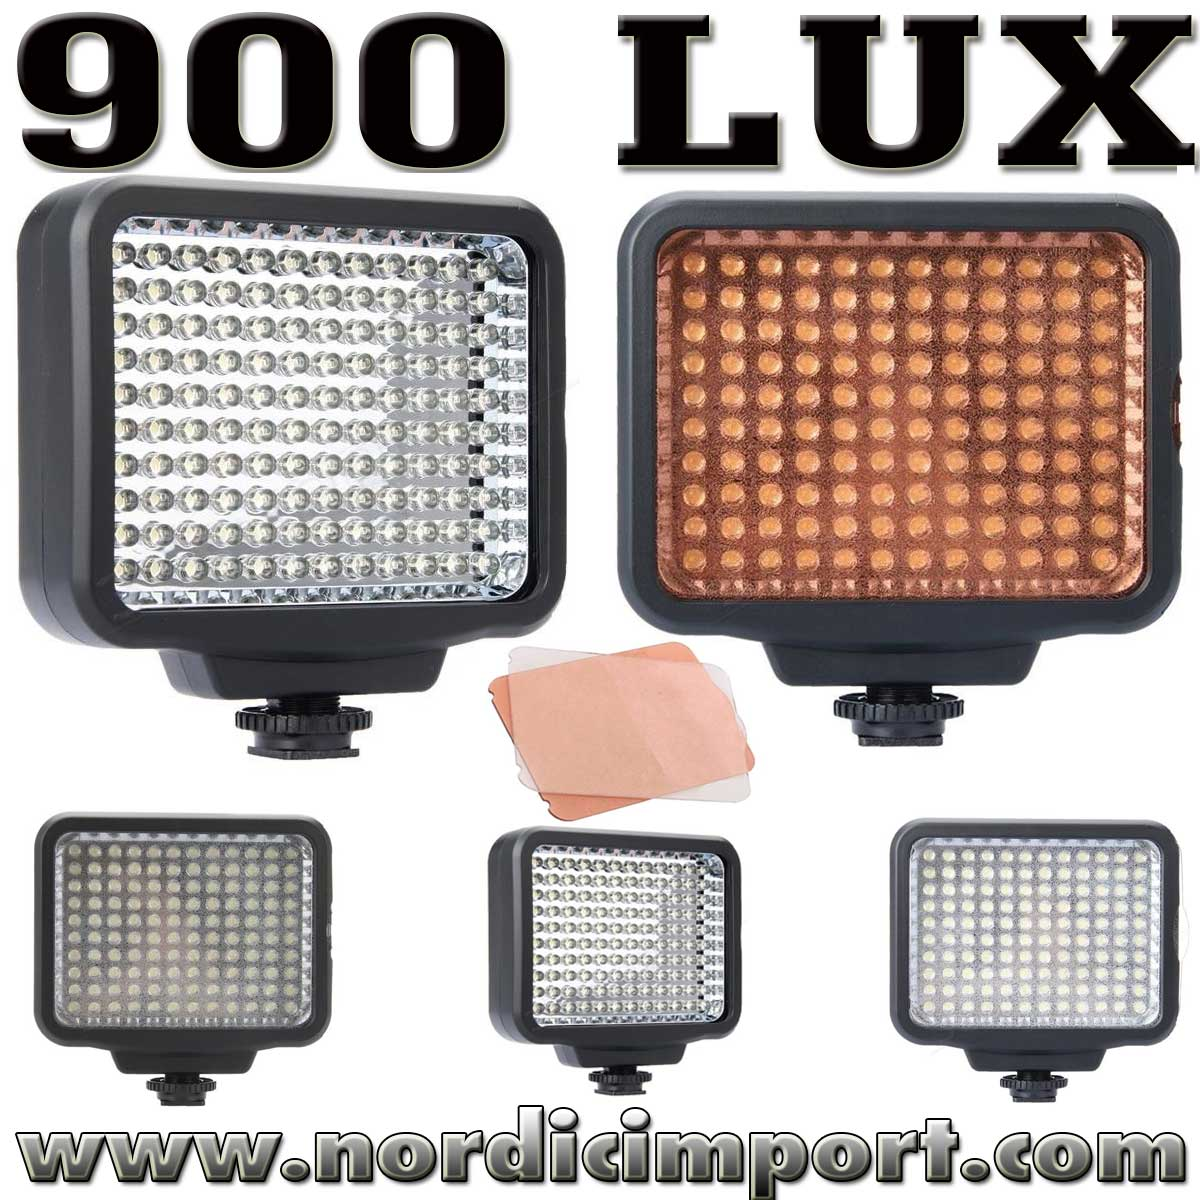 LED 900 Lux video lys /m. 2 stk diffusere